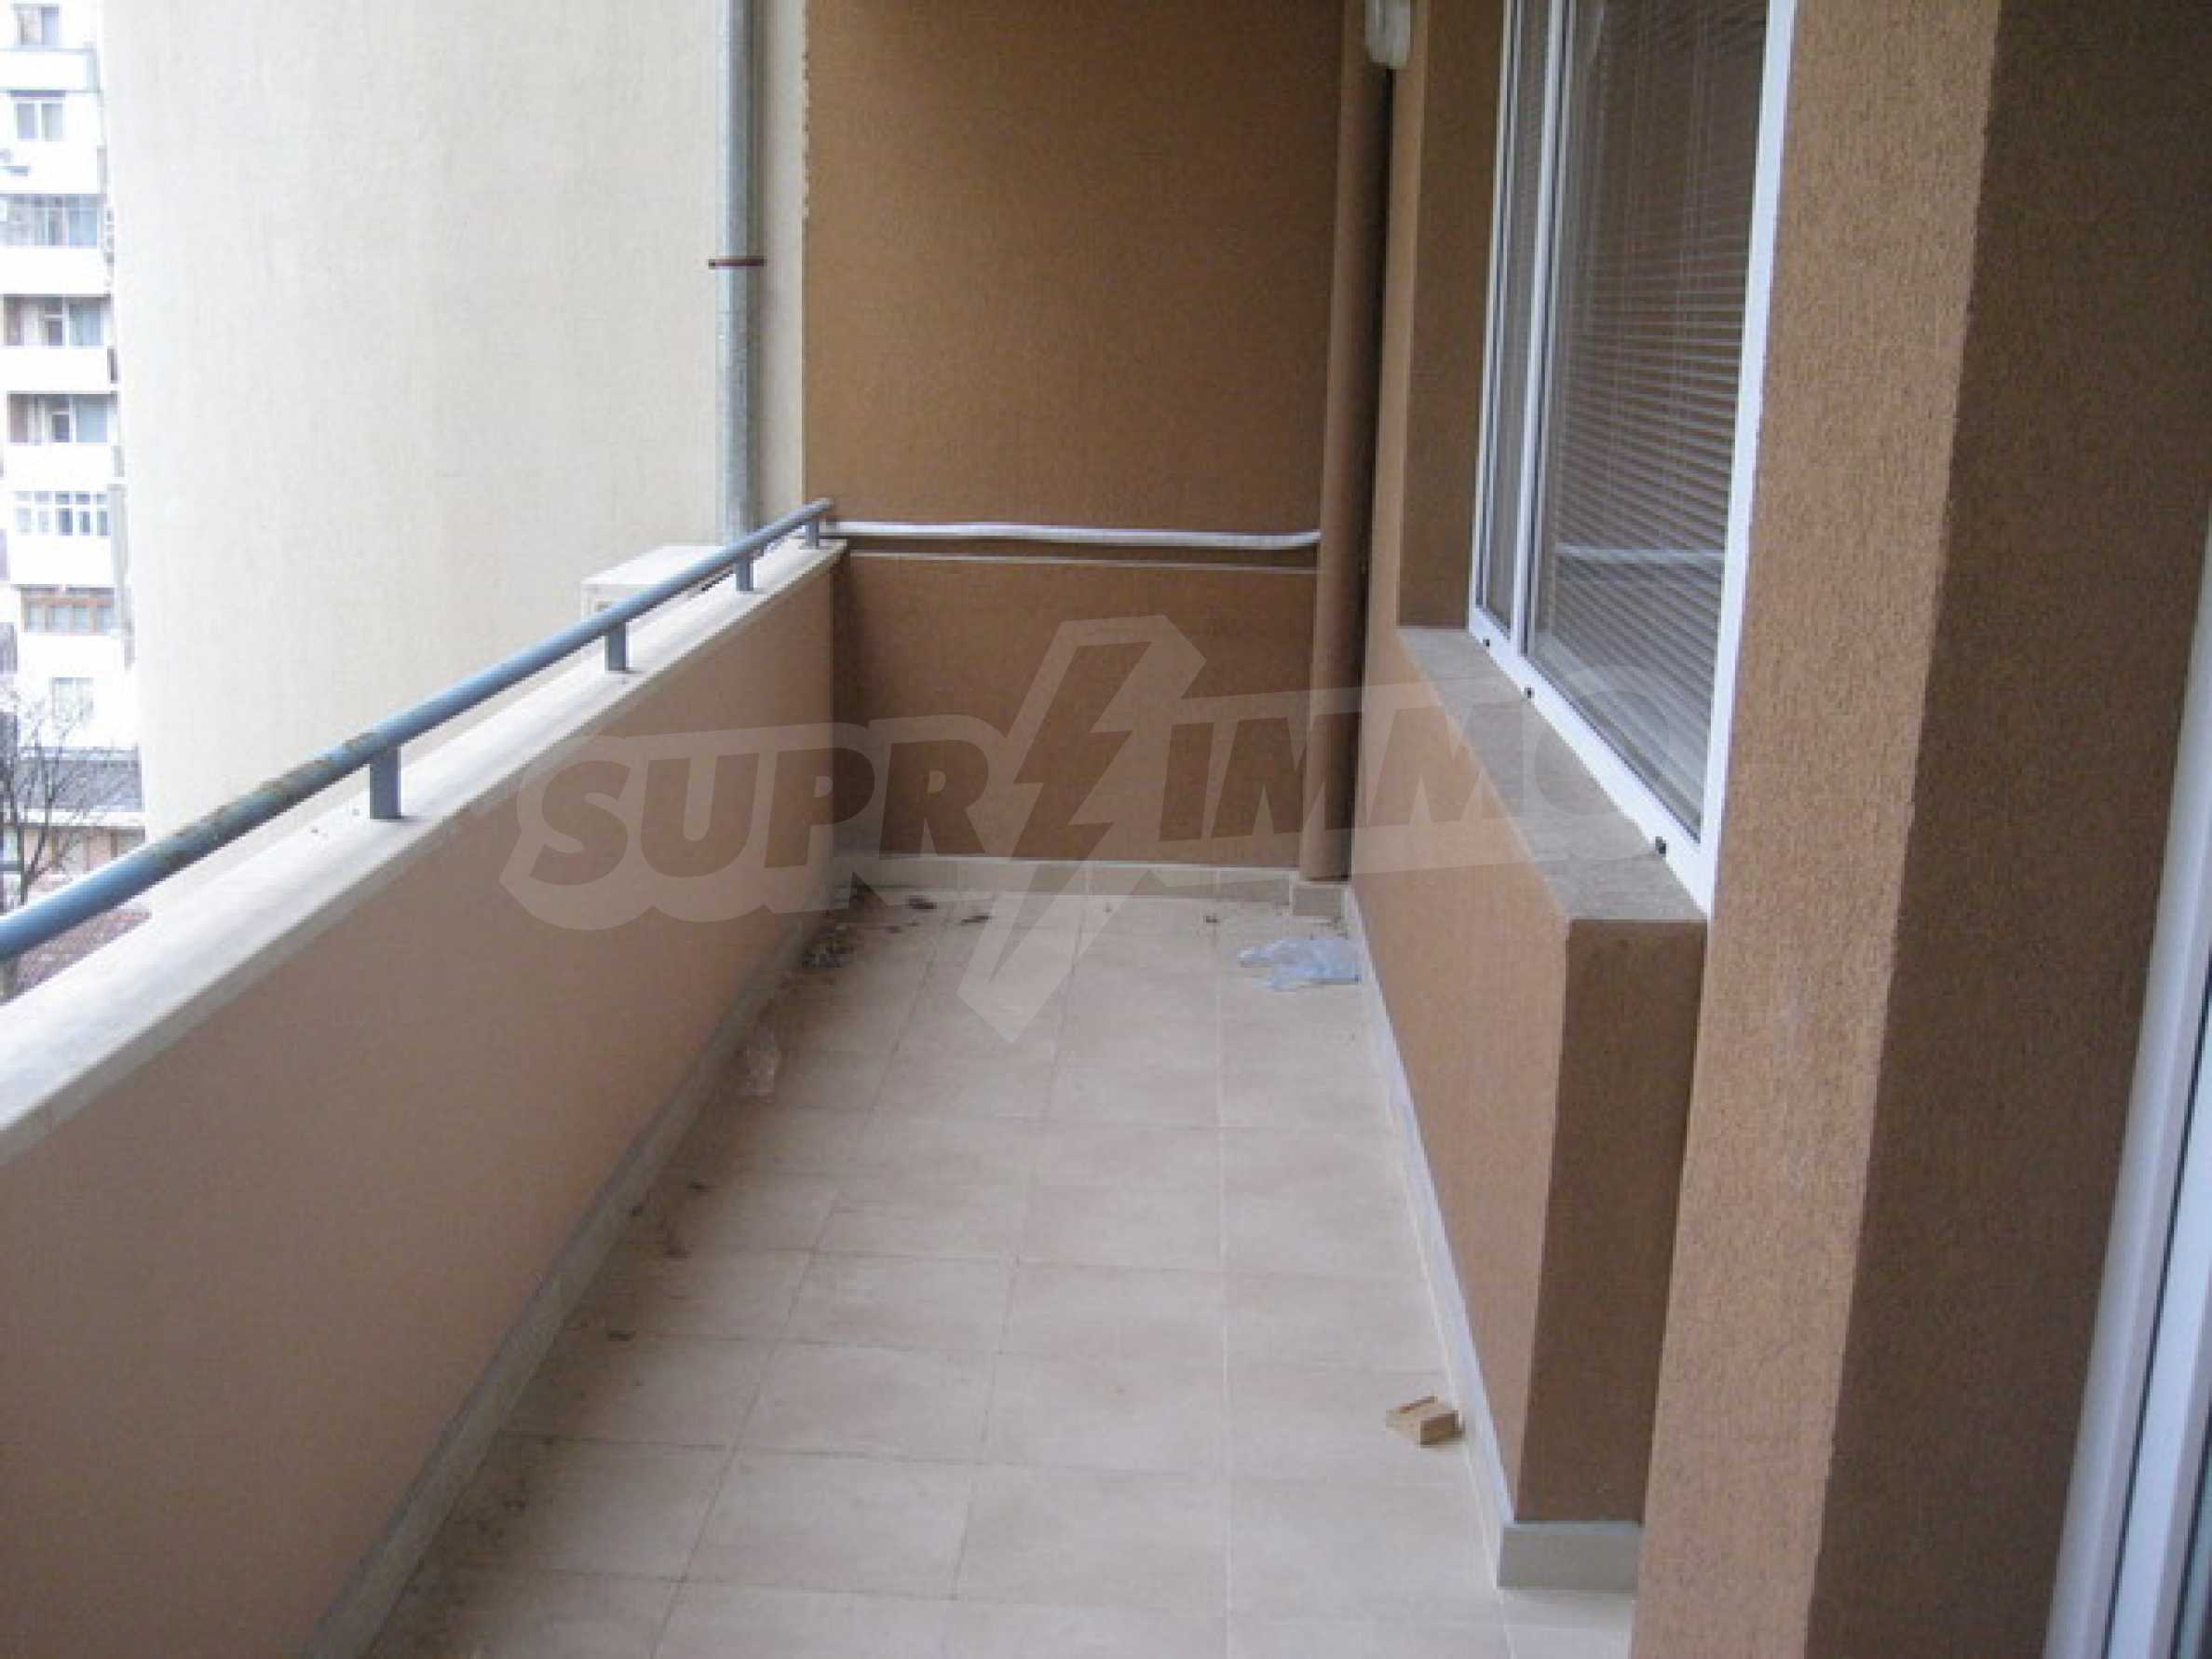 One bedroom apartment with good location for rent in Veliko Tarnovo 31